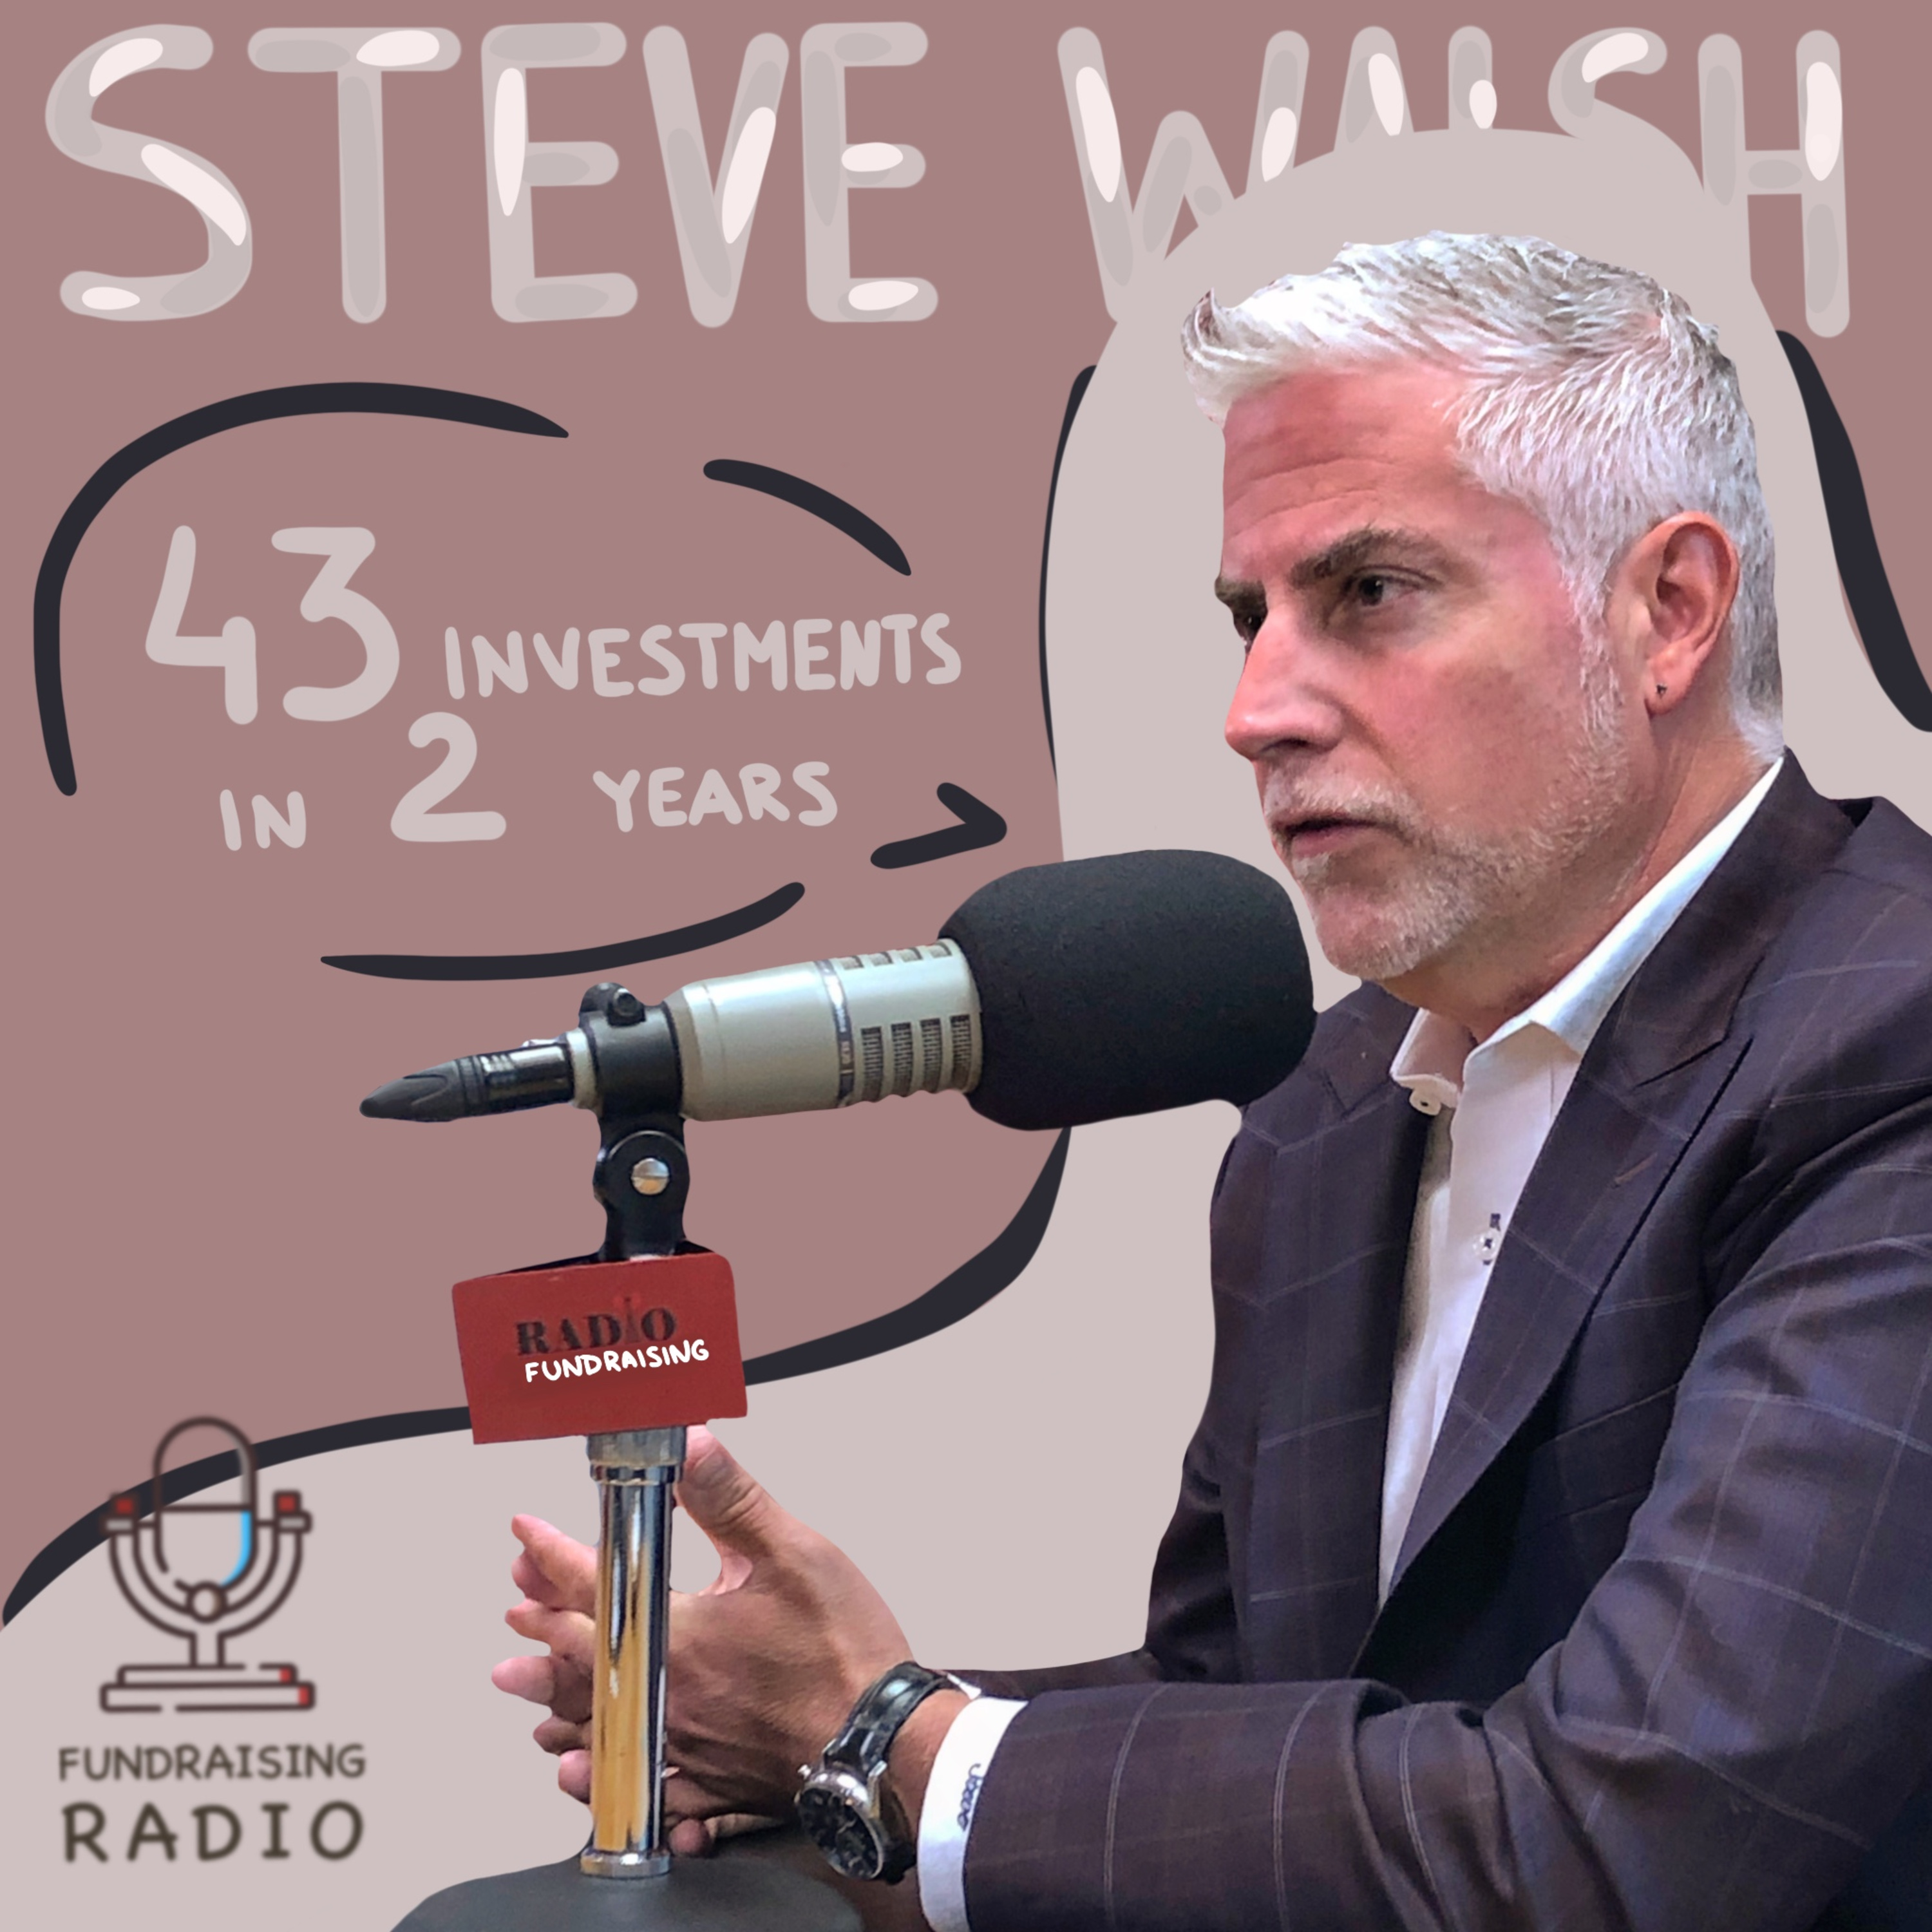 43 investments in 2 years - how is angel capital deployed? By Steve Walsh.